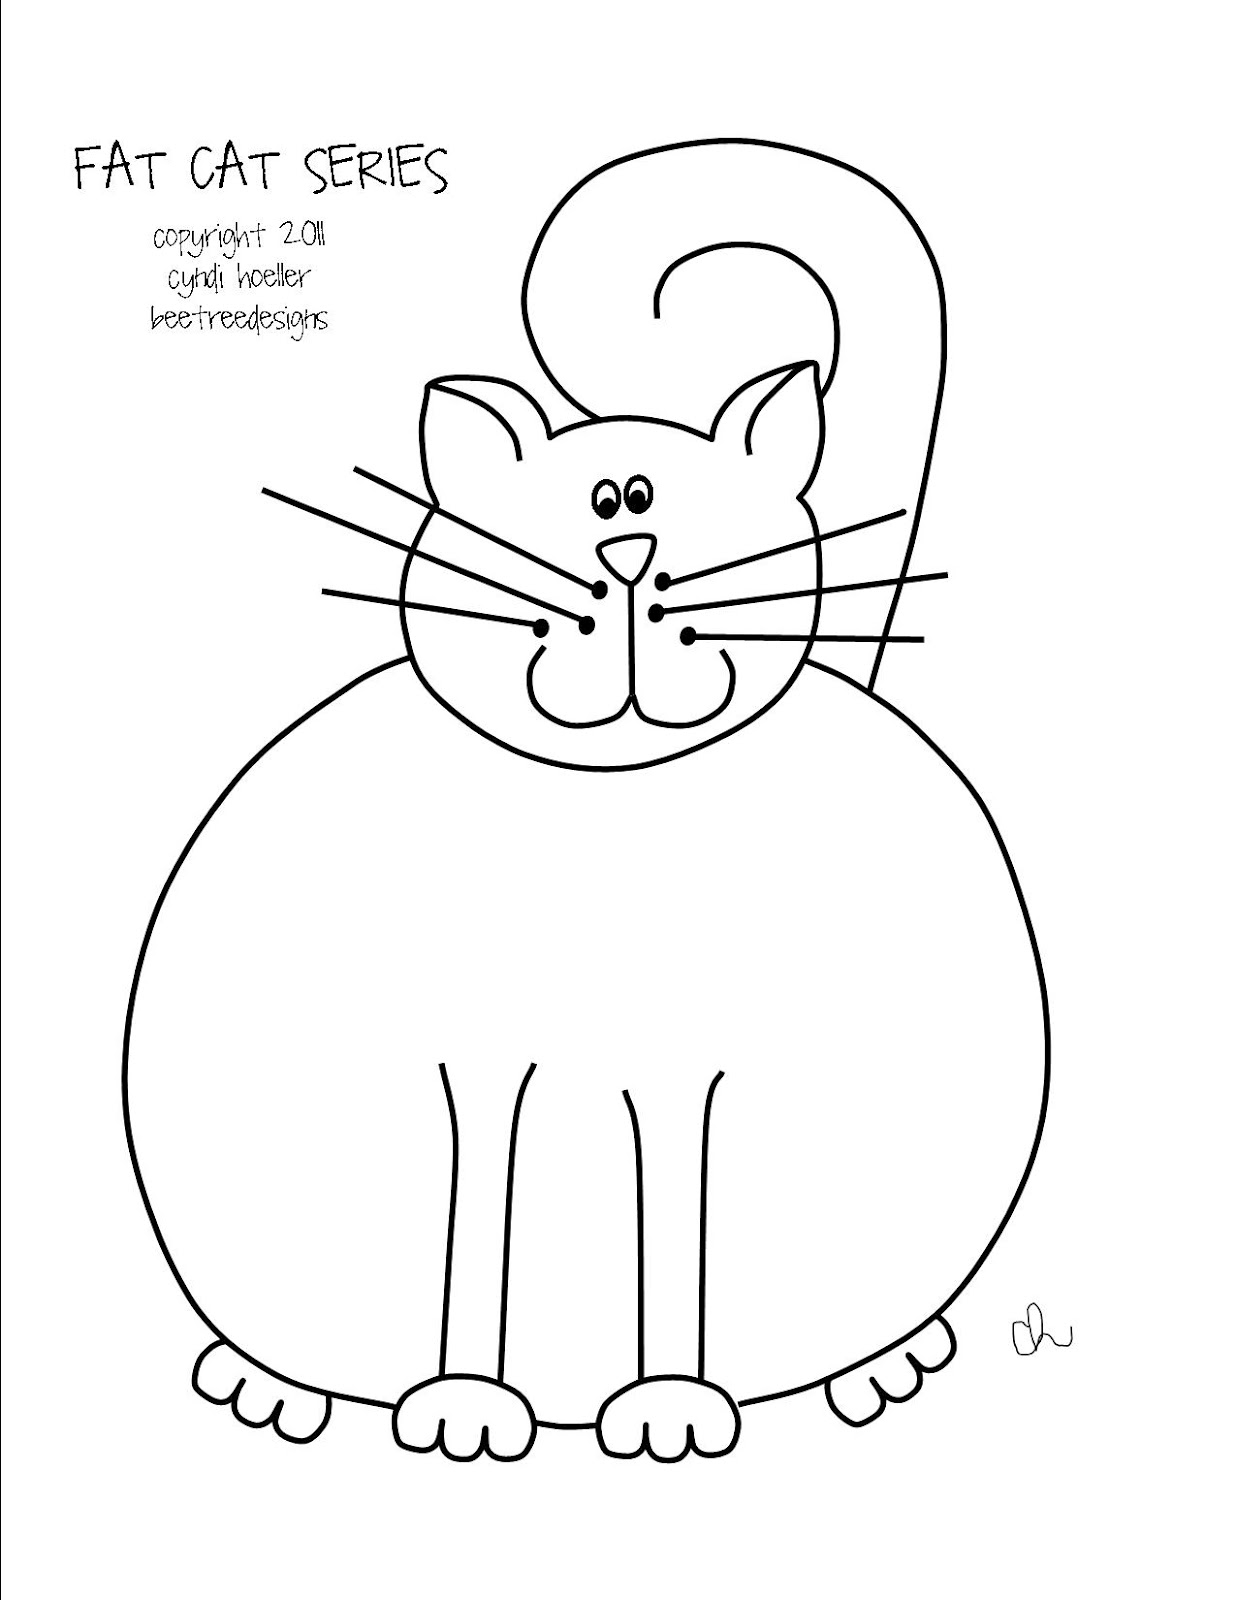 1236x1600 Stitch, Stitch, Stitch Freebie Fat Cat